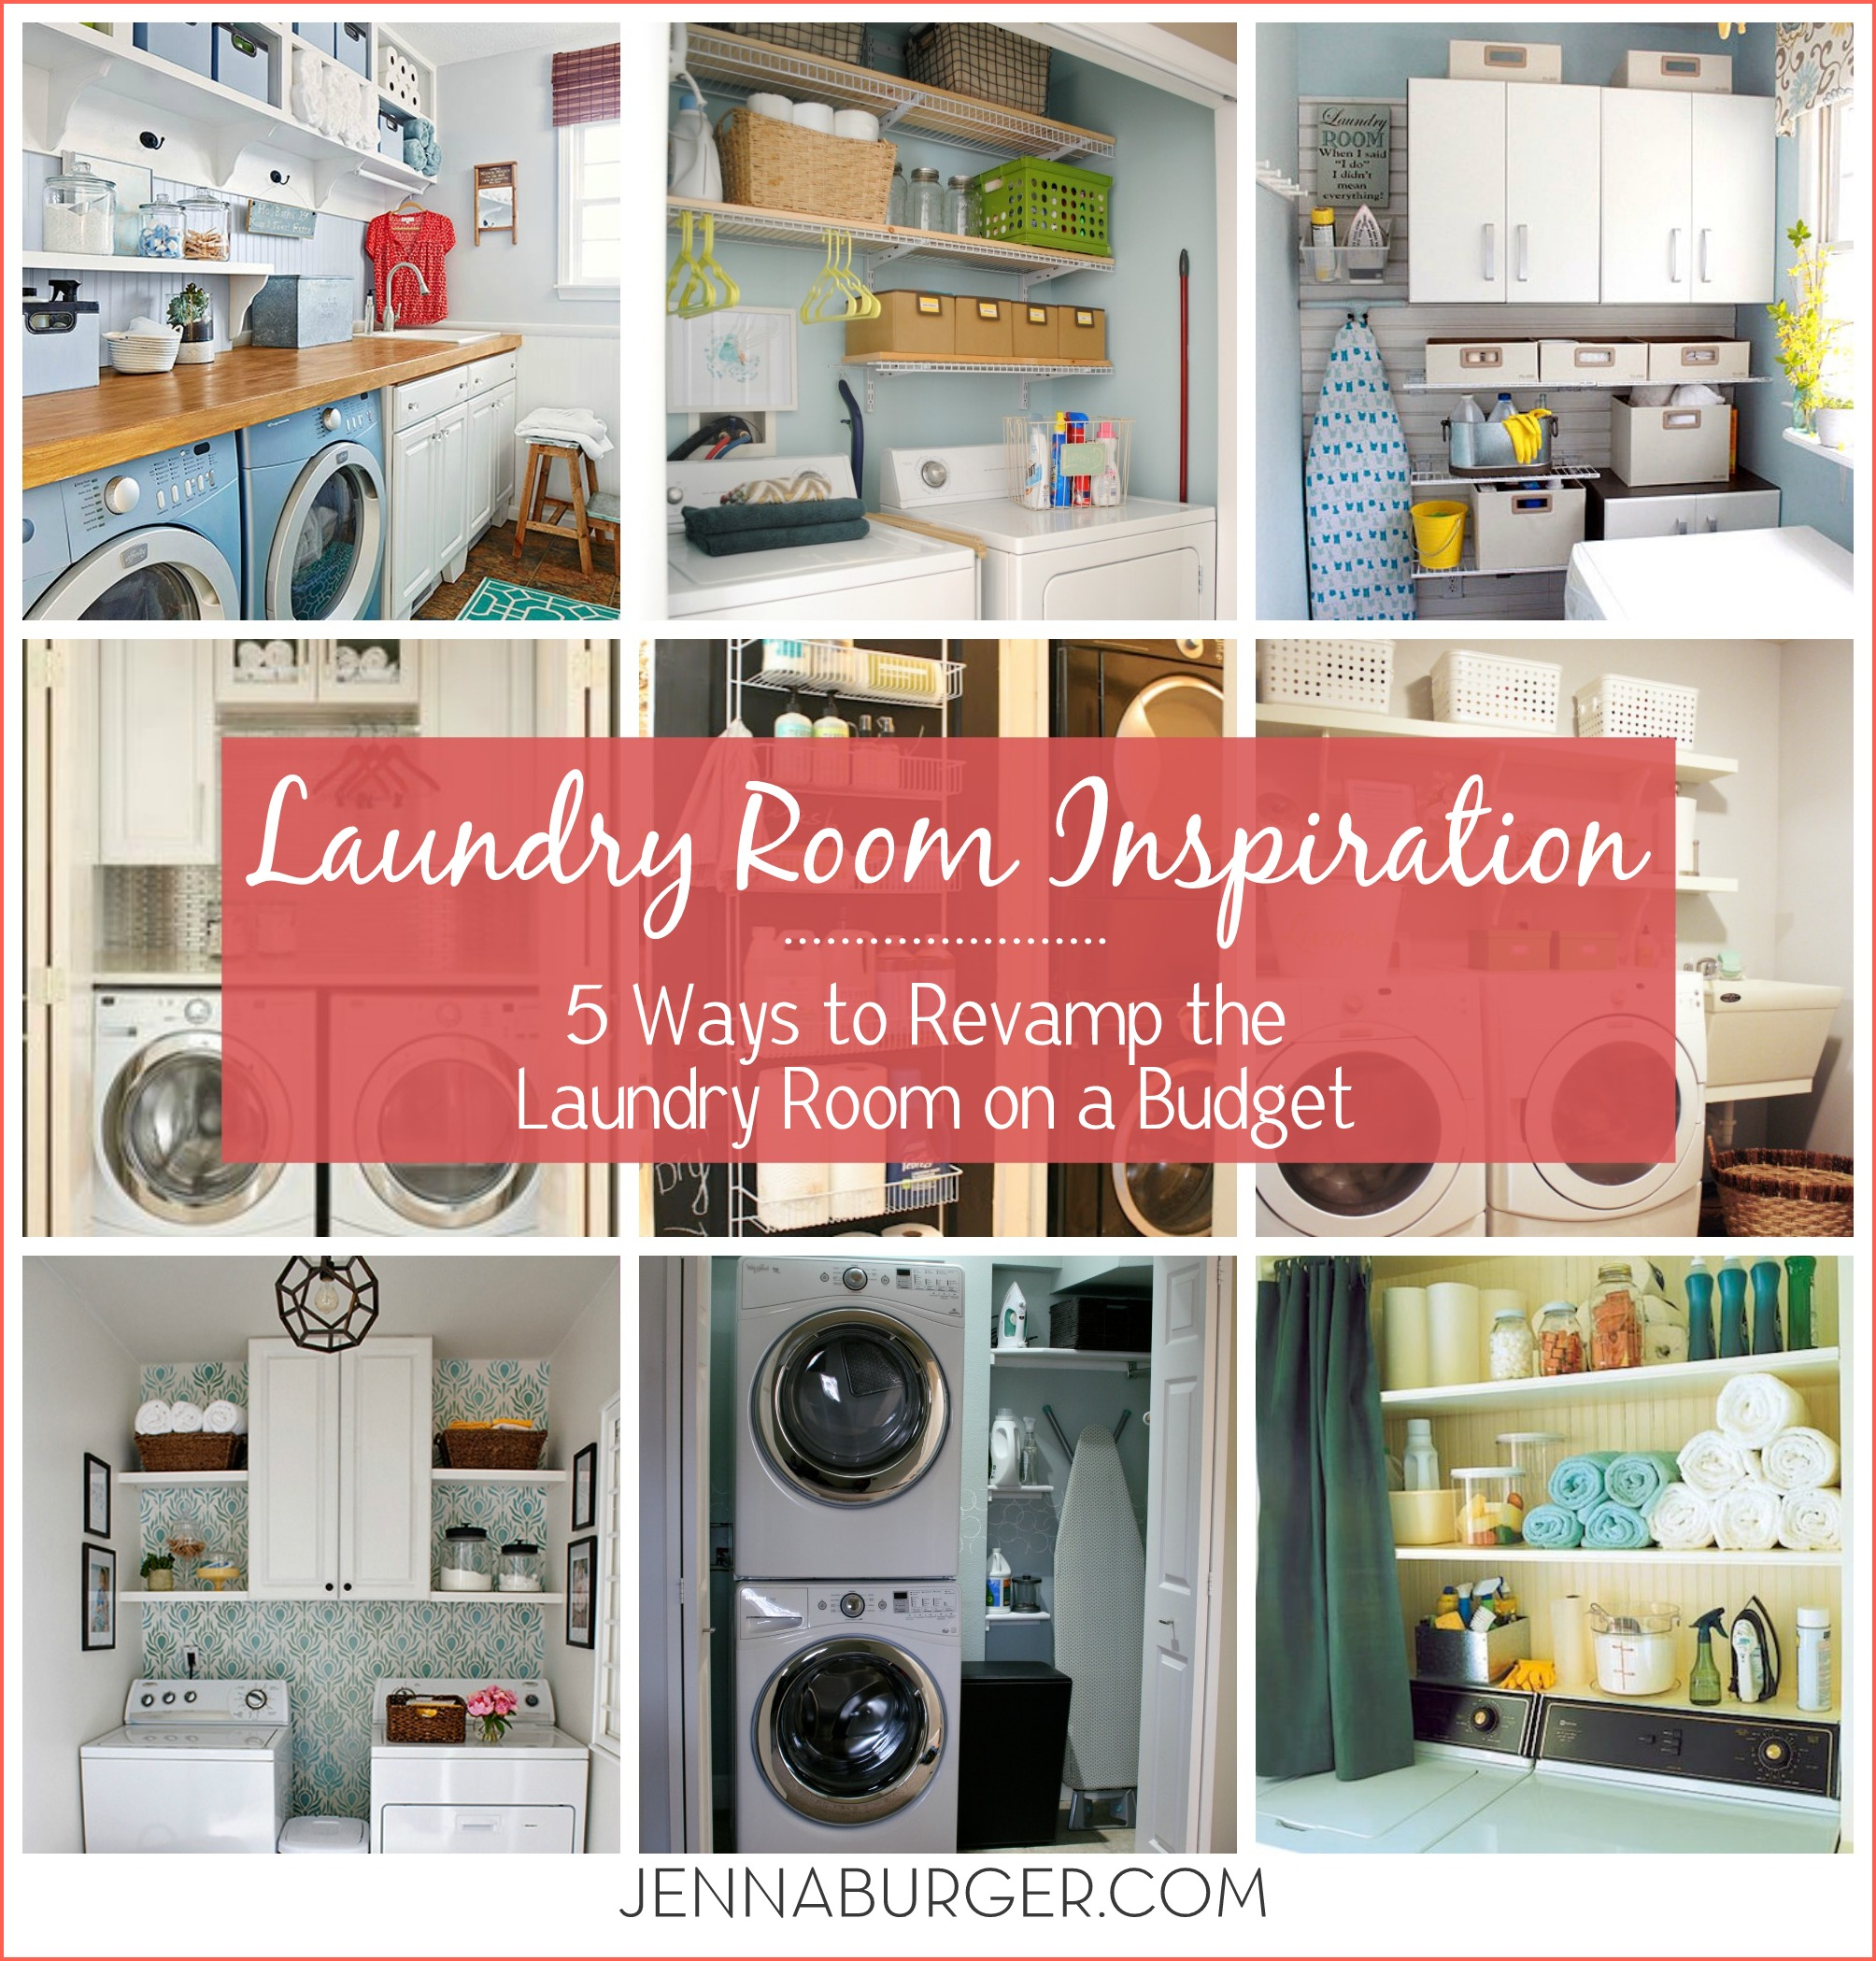 Laundry Room Inspiration 5 Ways To REVAMP A Laundry Room On A BUDGET